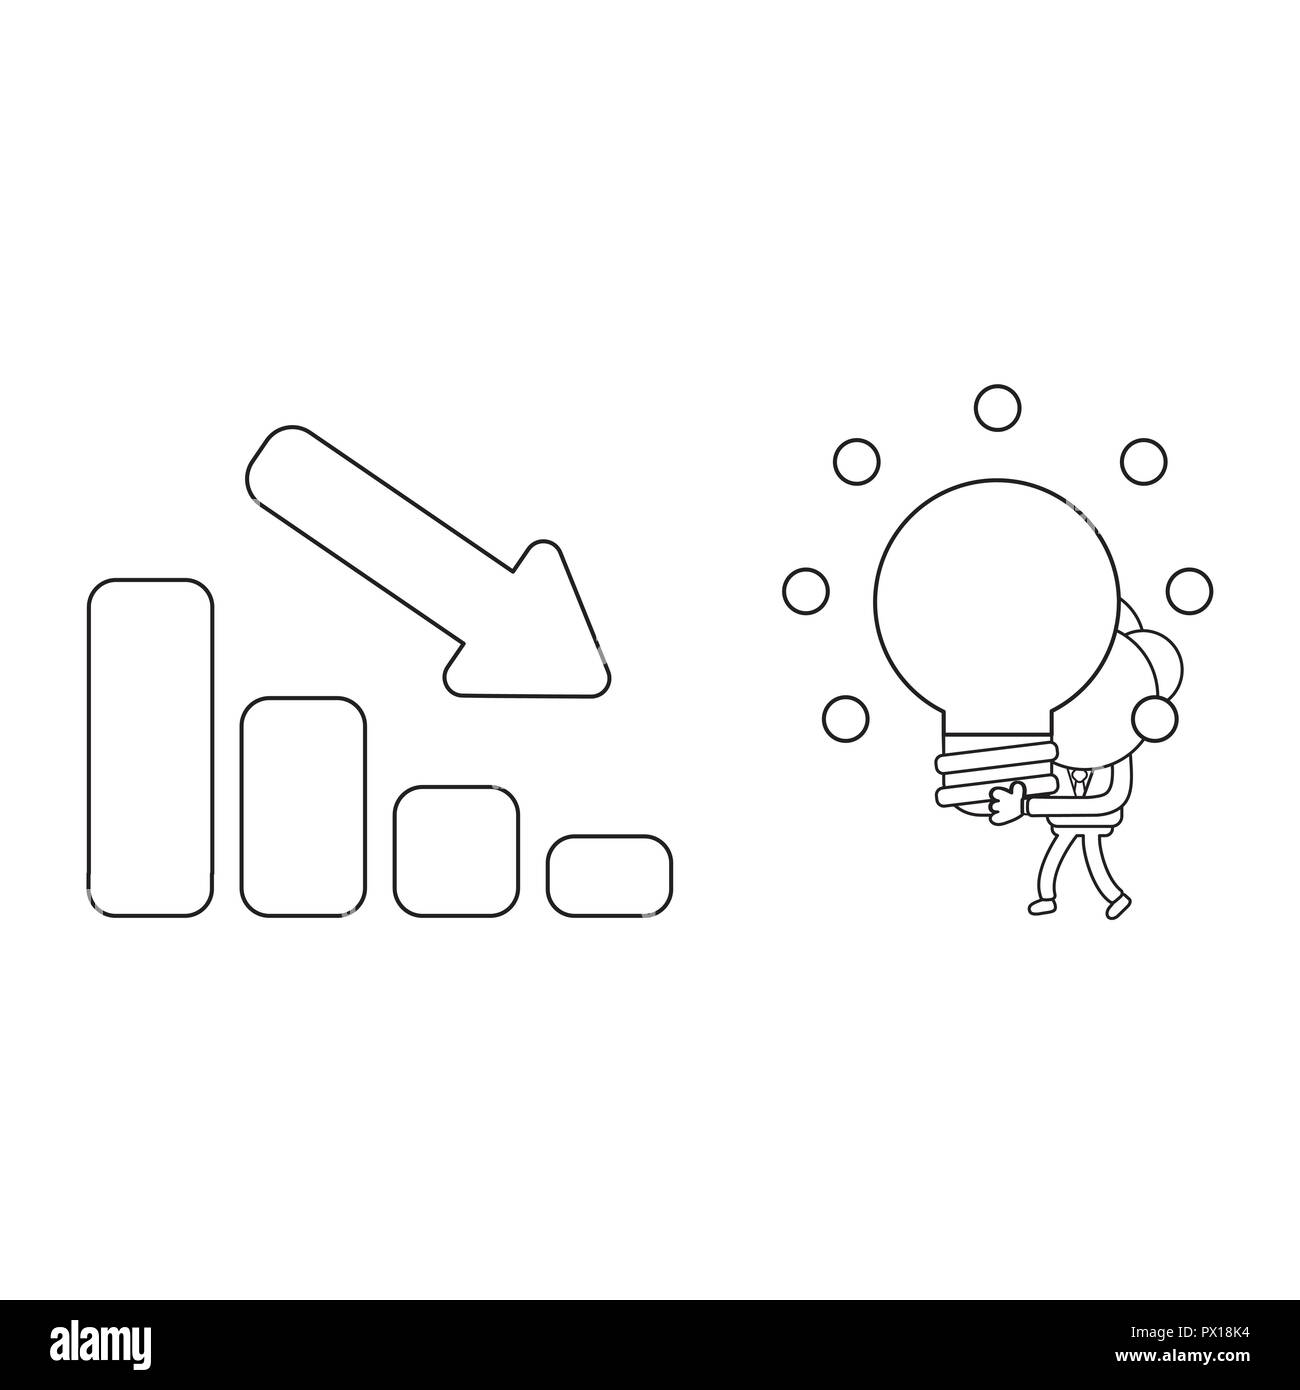 Bar Graph Black And White Stock Photos Images Alamy So Now The Schematic Of Led Circuit Will Look Like Vector Illustration Concept Businessman Character Carrying Glowing Light Bulb Idea To Sales Moving